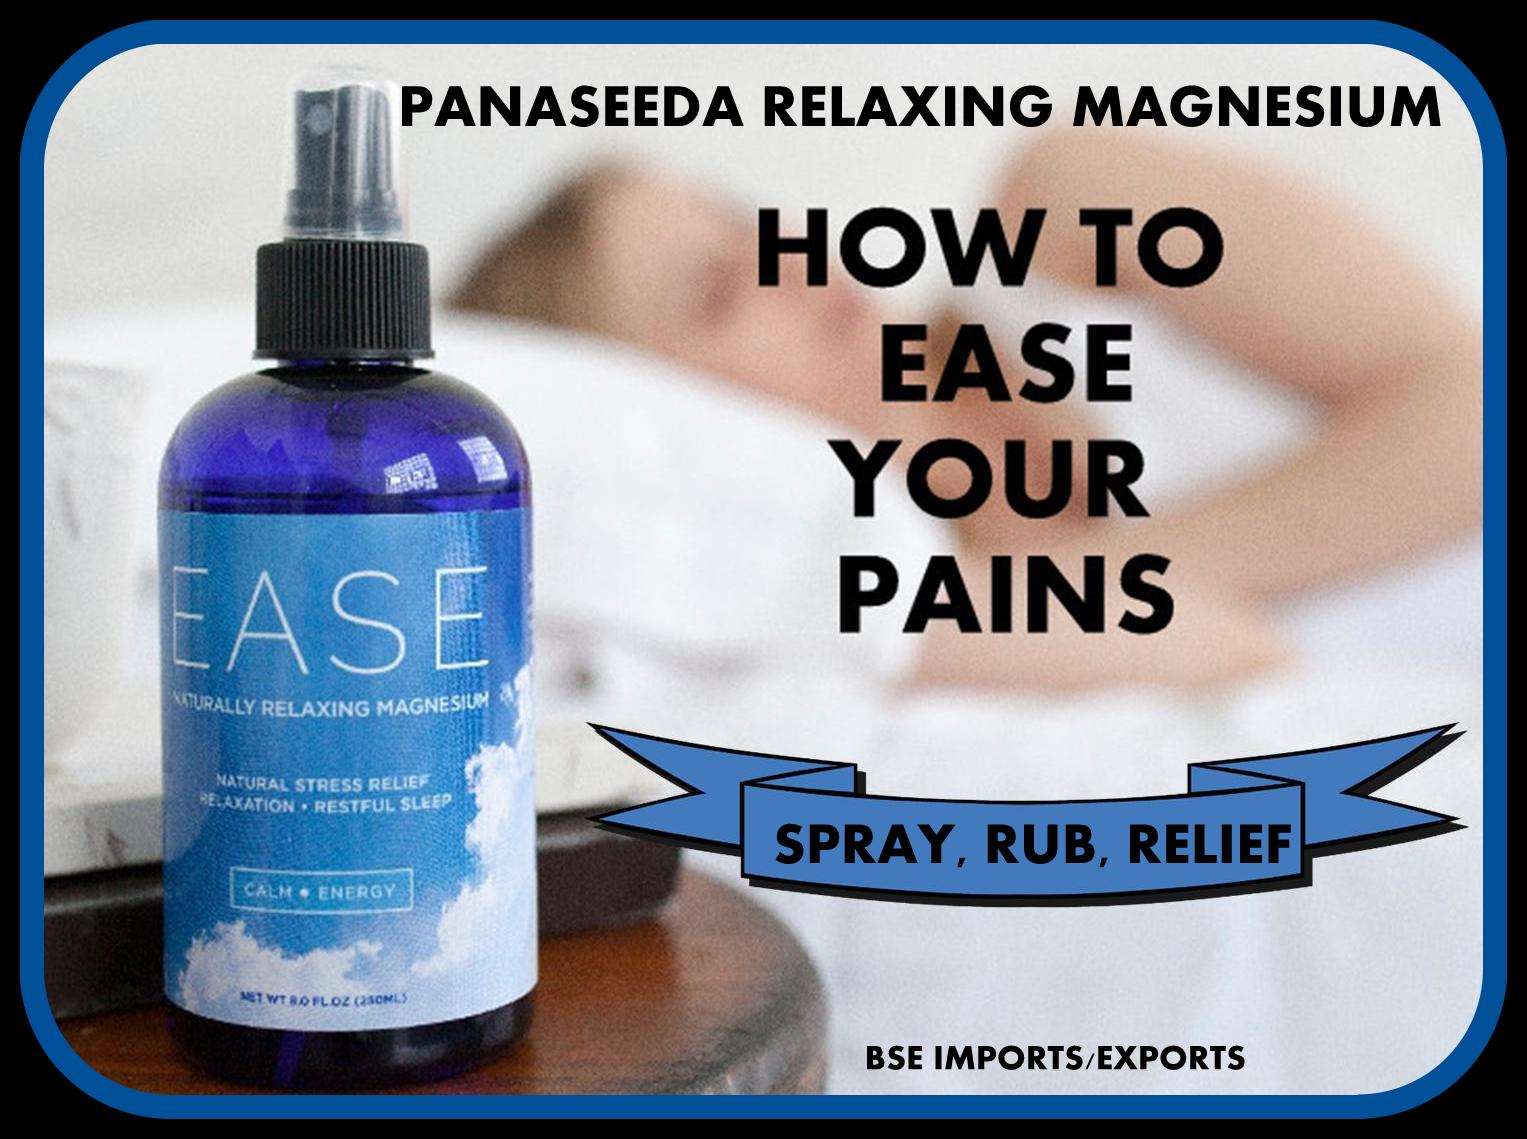 ARE YOU MAGNESIUM DEFFICIENT - DO YOU HAVE PAINS AND WANT THEM TO STOP